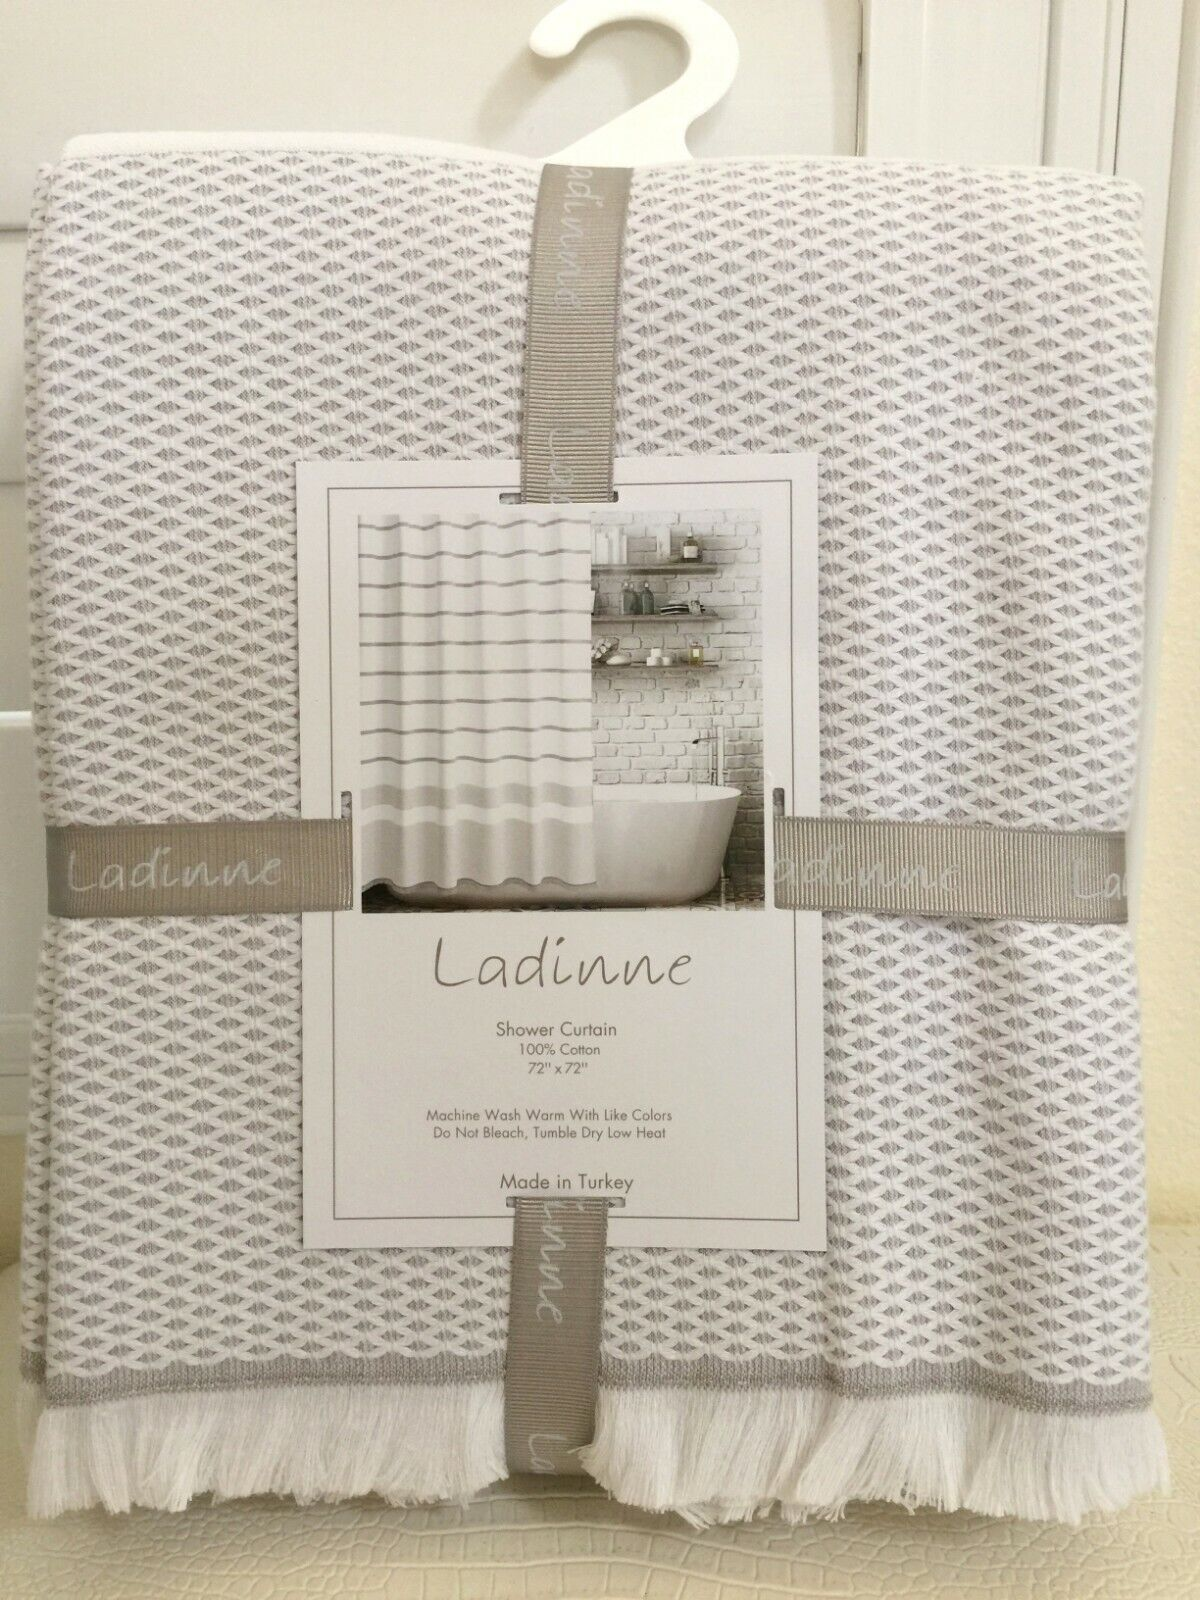 Shower Curtain Fabric By Ladinne Luxury Turkey100 Cotton Taupe White 72x72 New